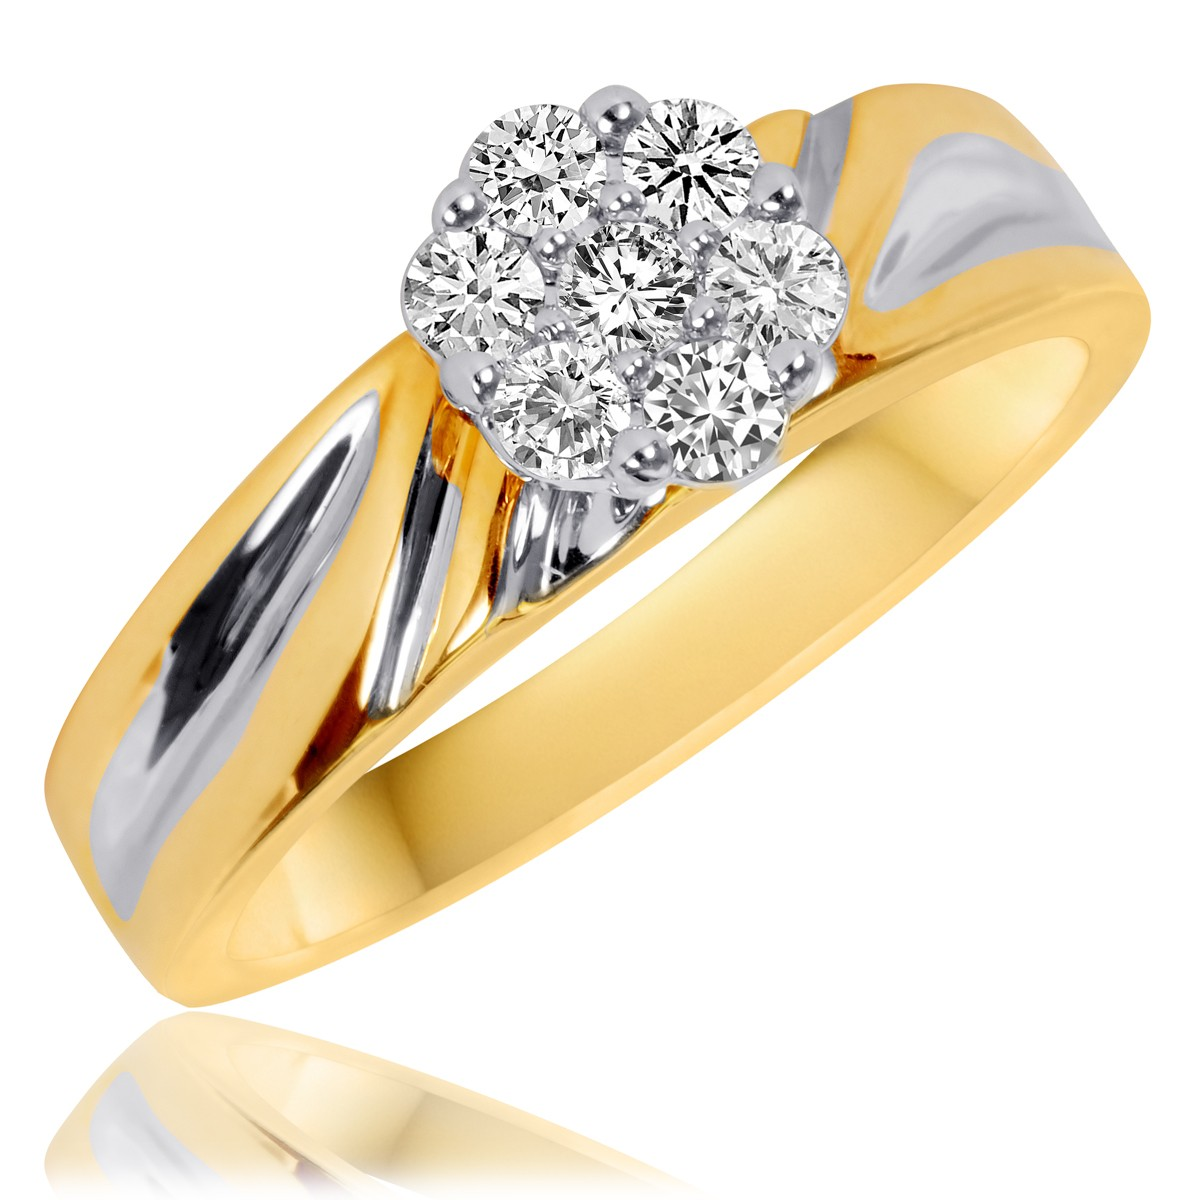 1/3 CT. T.W. Diamond Ladies' Engagement Ring 14K Yellow Gold